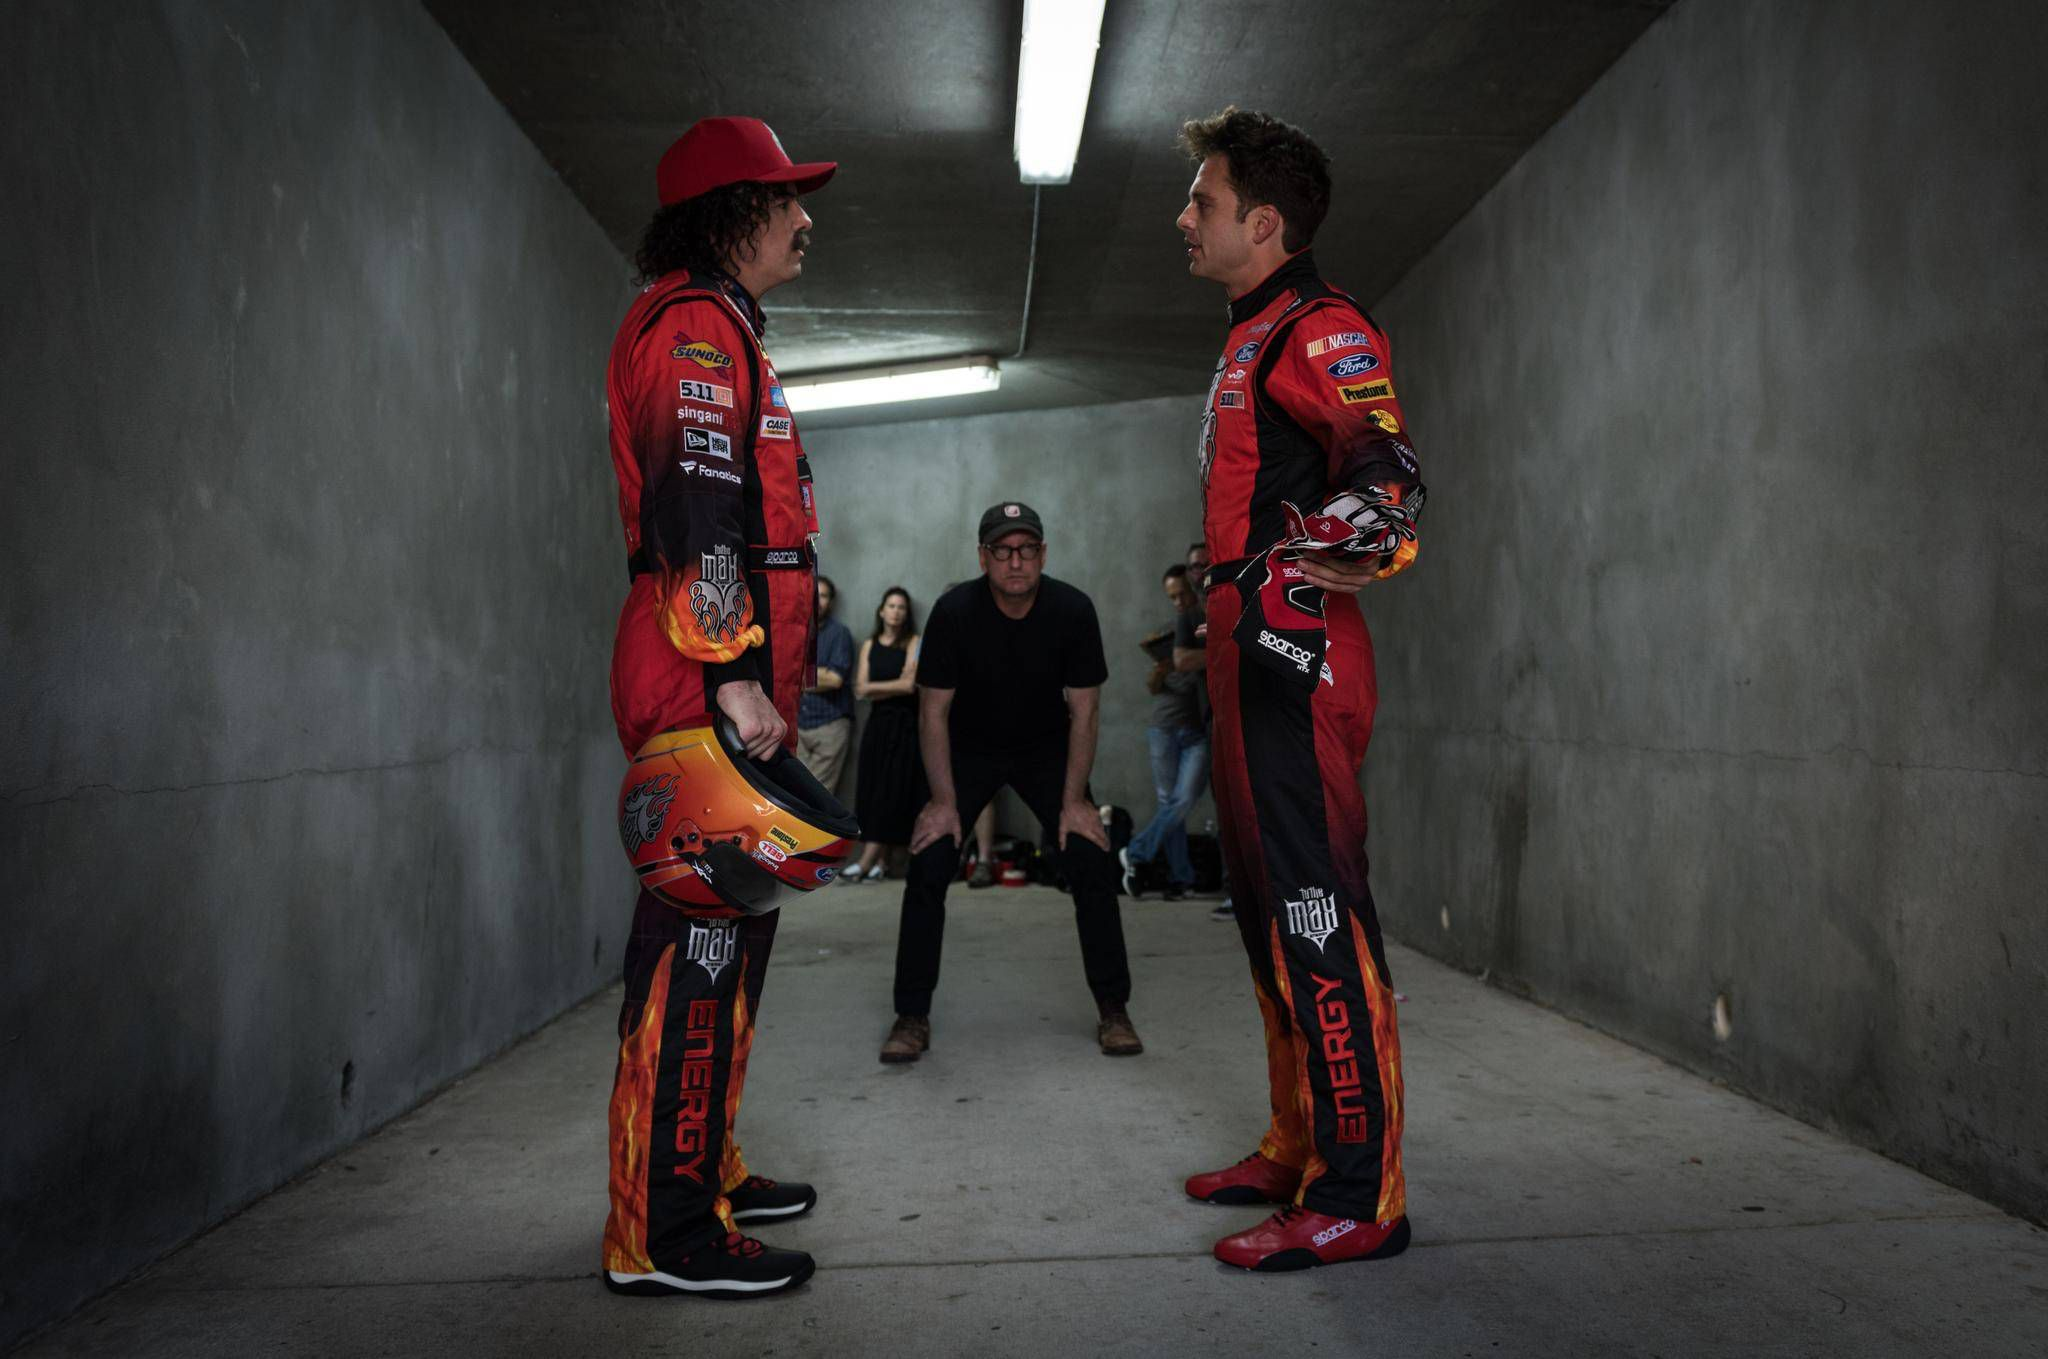 How Steven Soderbergh Hopes To Upend The Film Industry With Logan Lucky The Globe And Mail